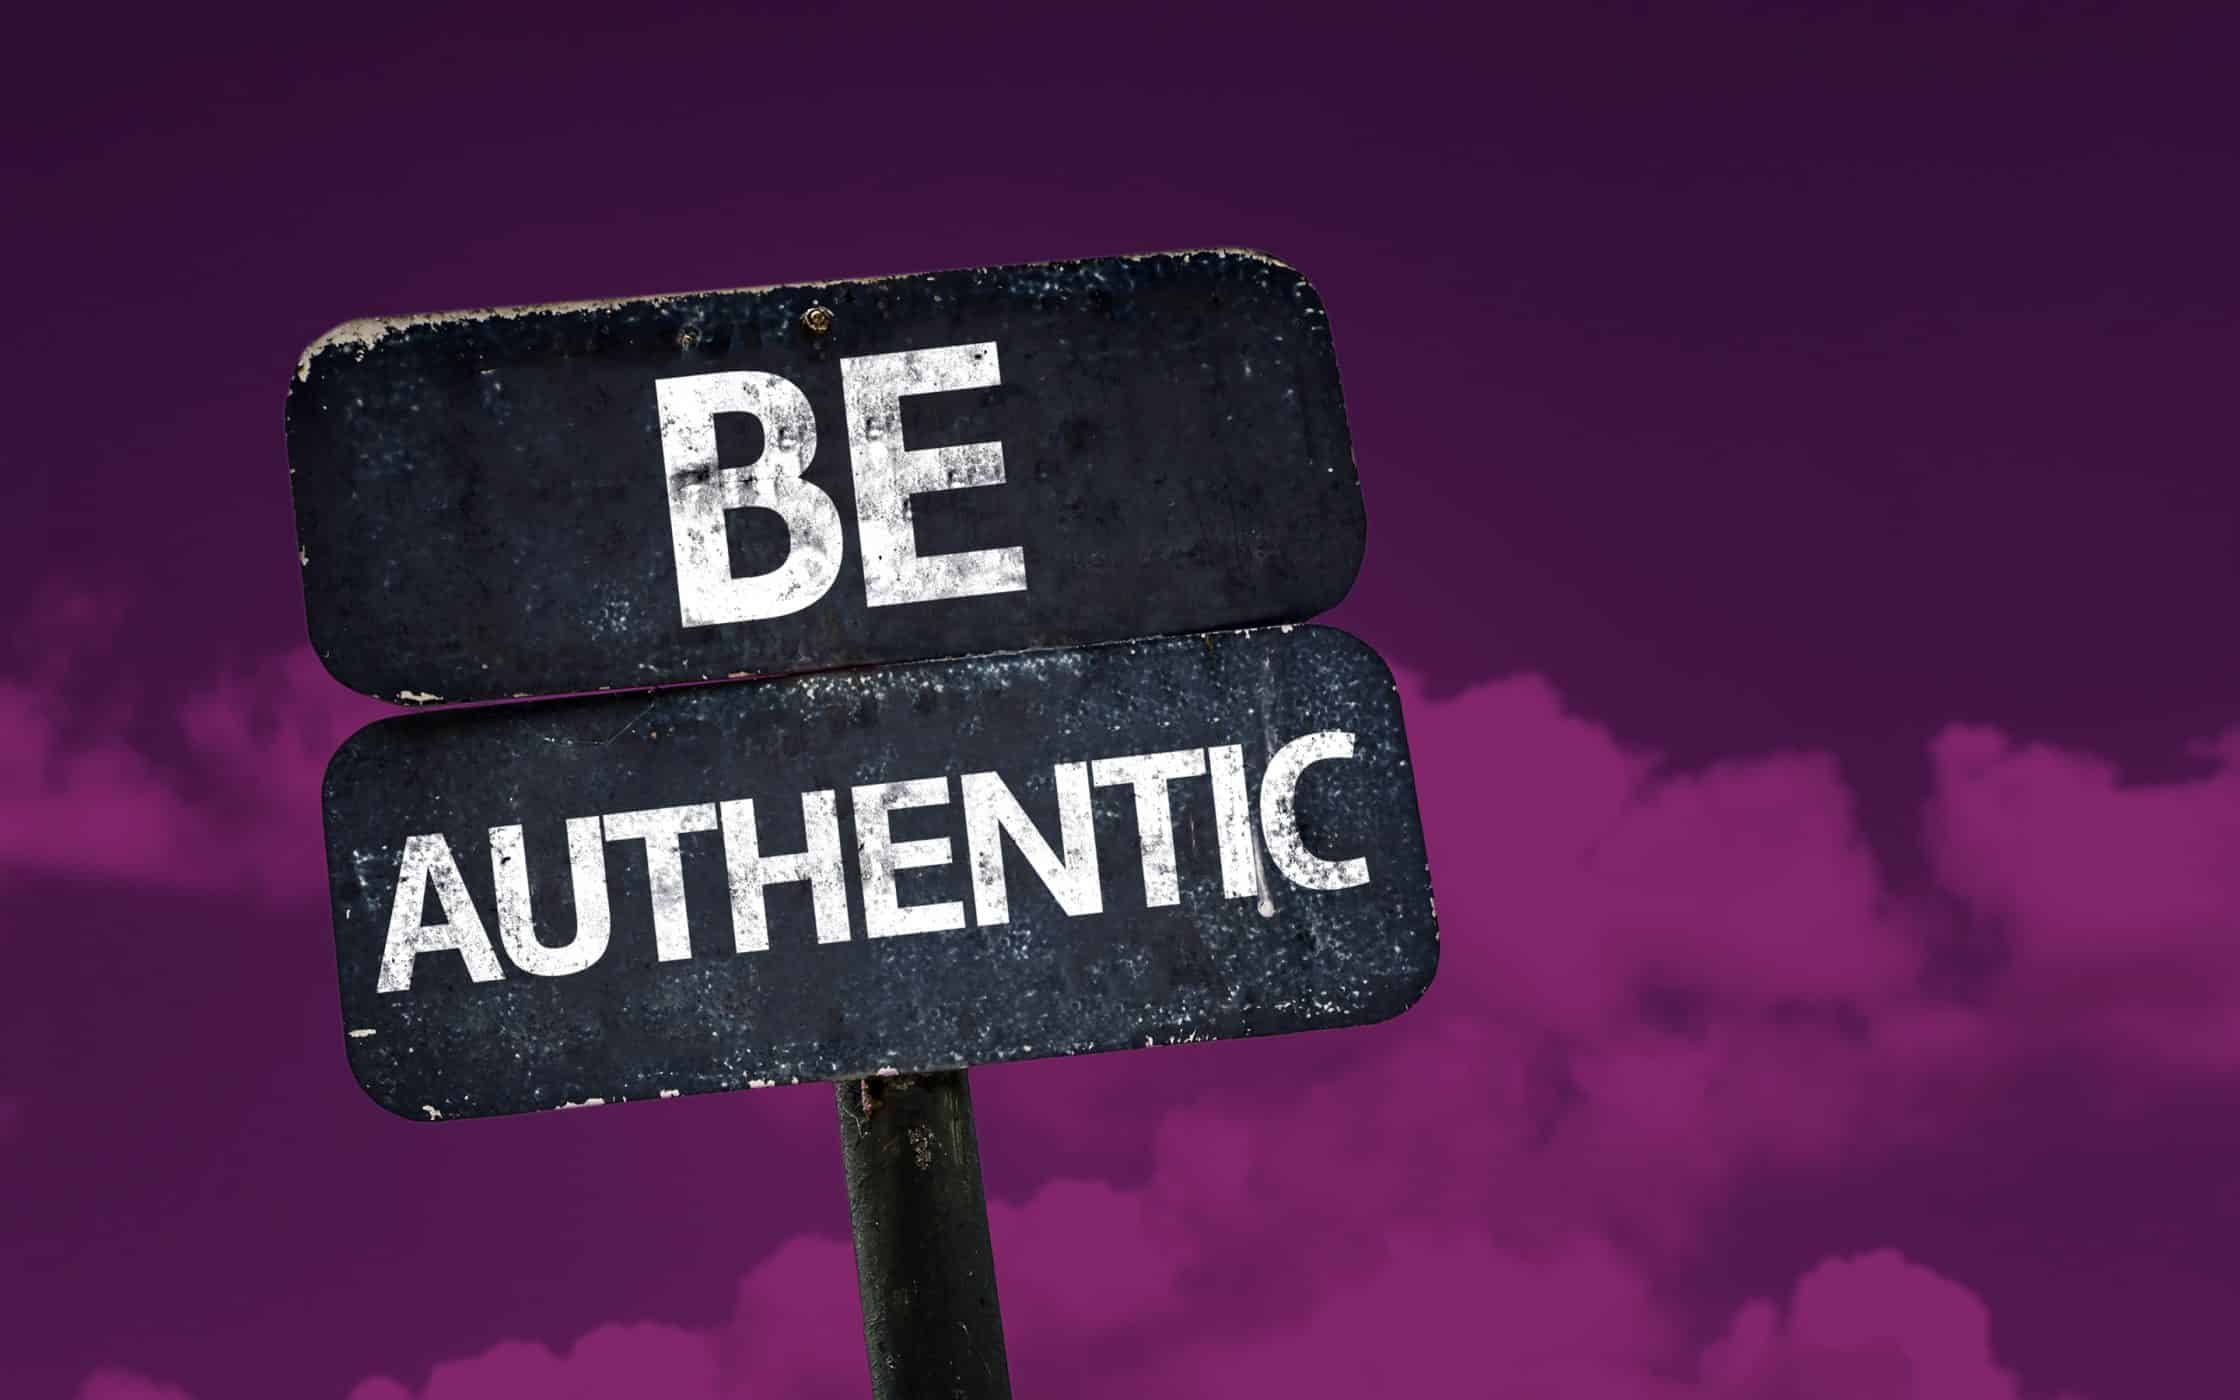 Authenticity of your brand and quality